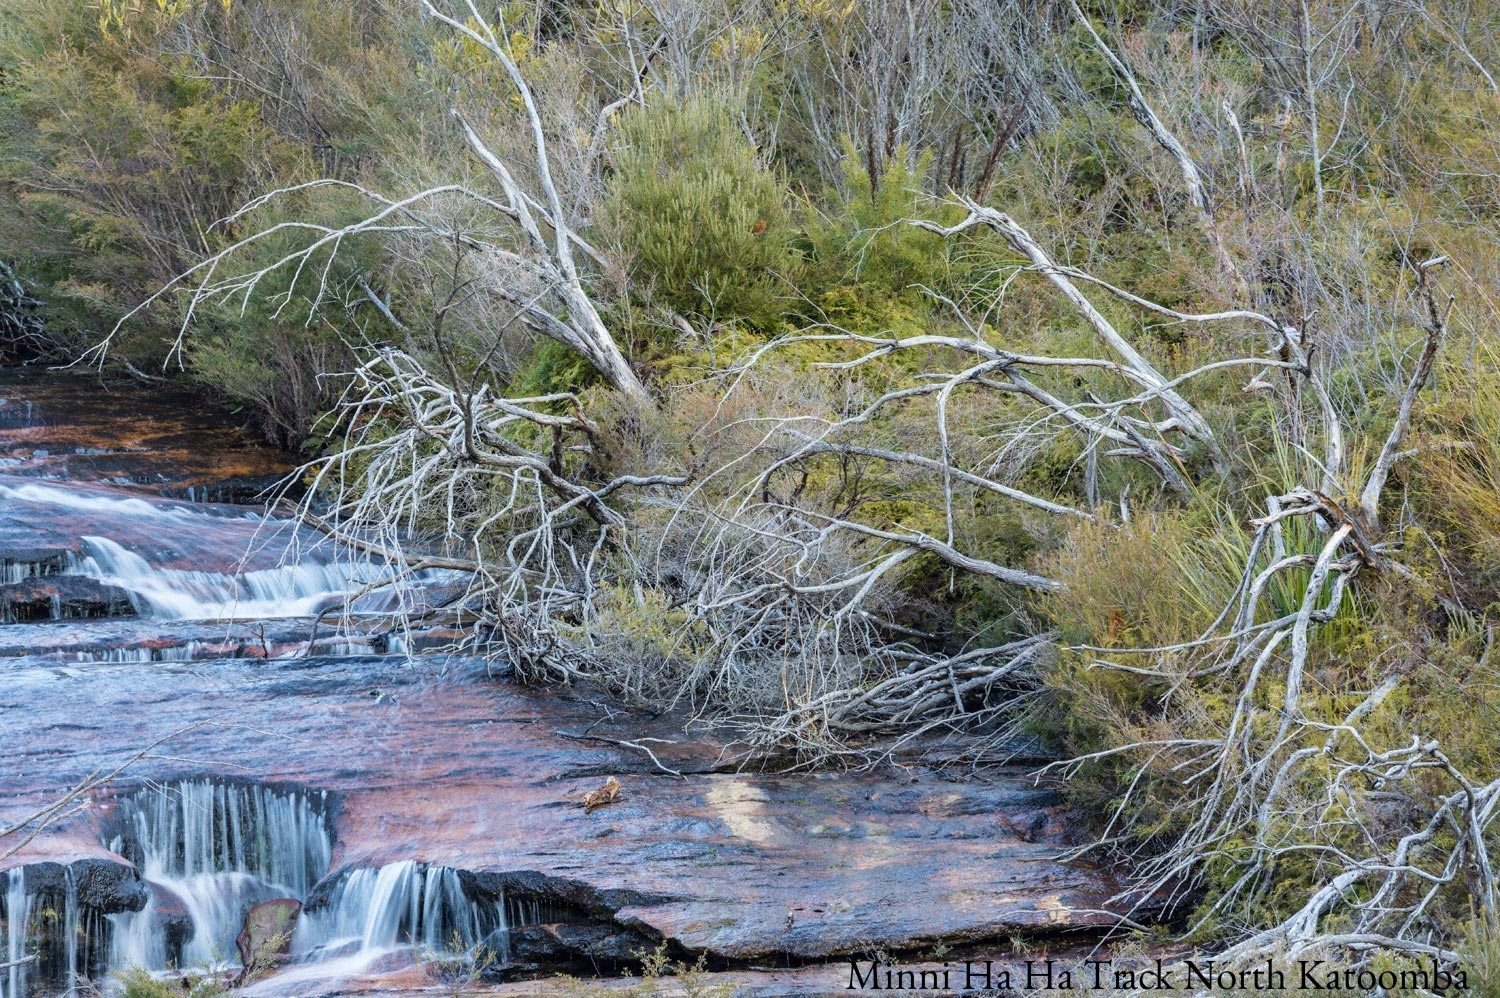 Warren-Hinder-LR-Upper-Minni-Ha-Ha-Dead-Trees-after-bush-fires.jpg